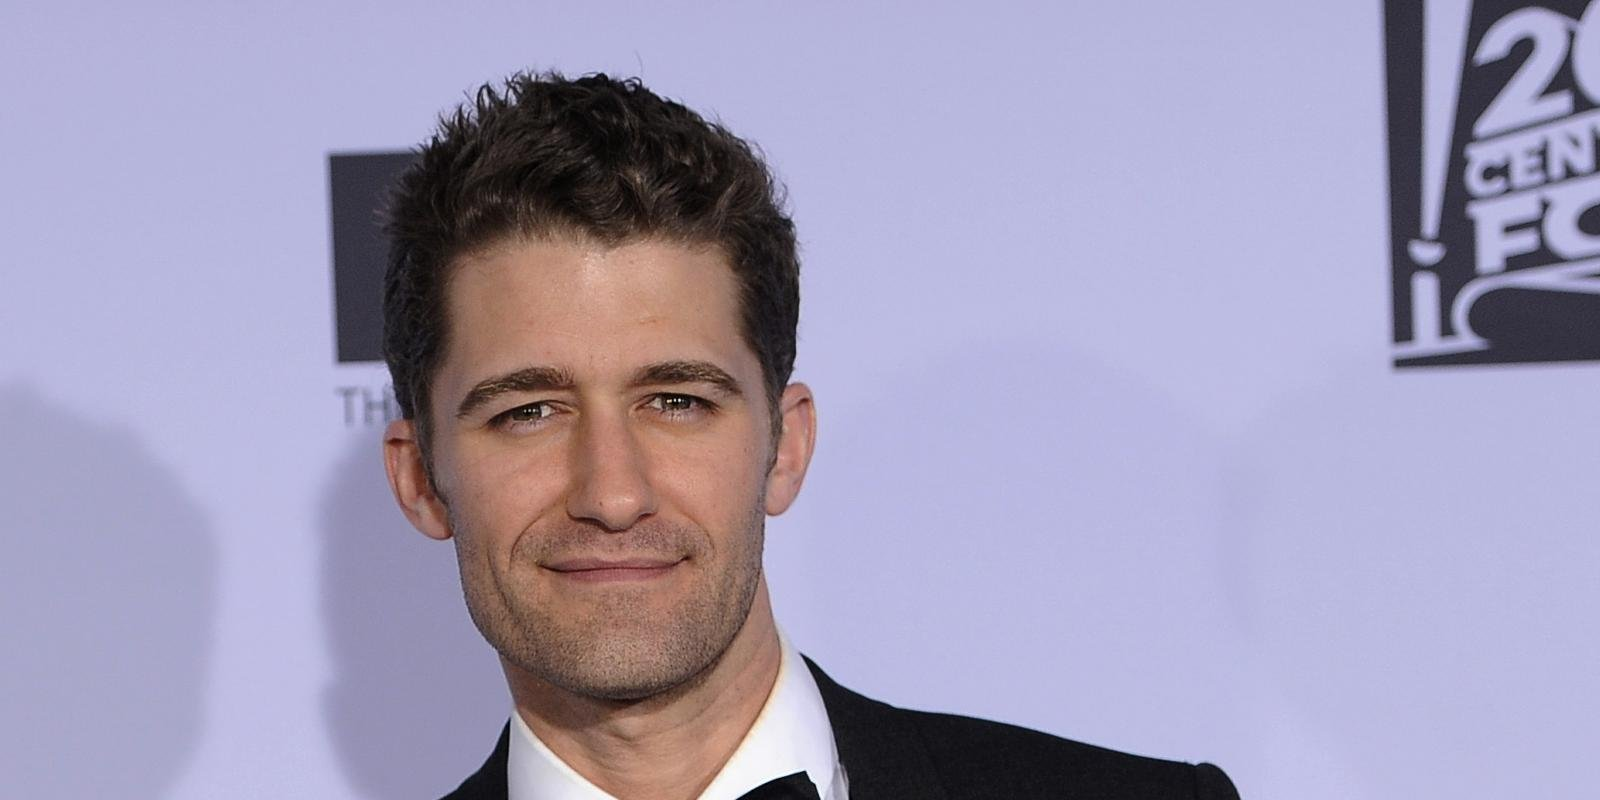 Glee's Matthew Morrison slams own movie over accusations of animal abuse